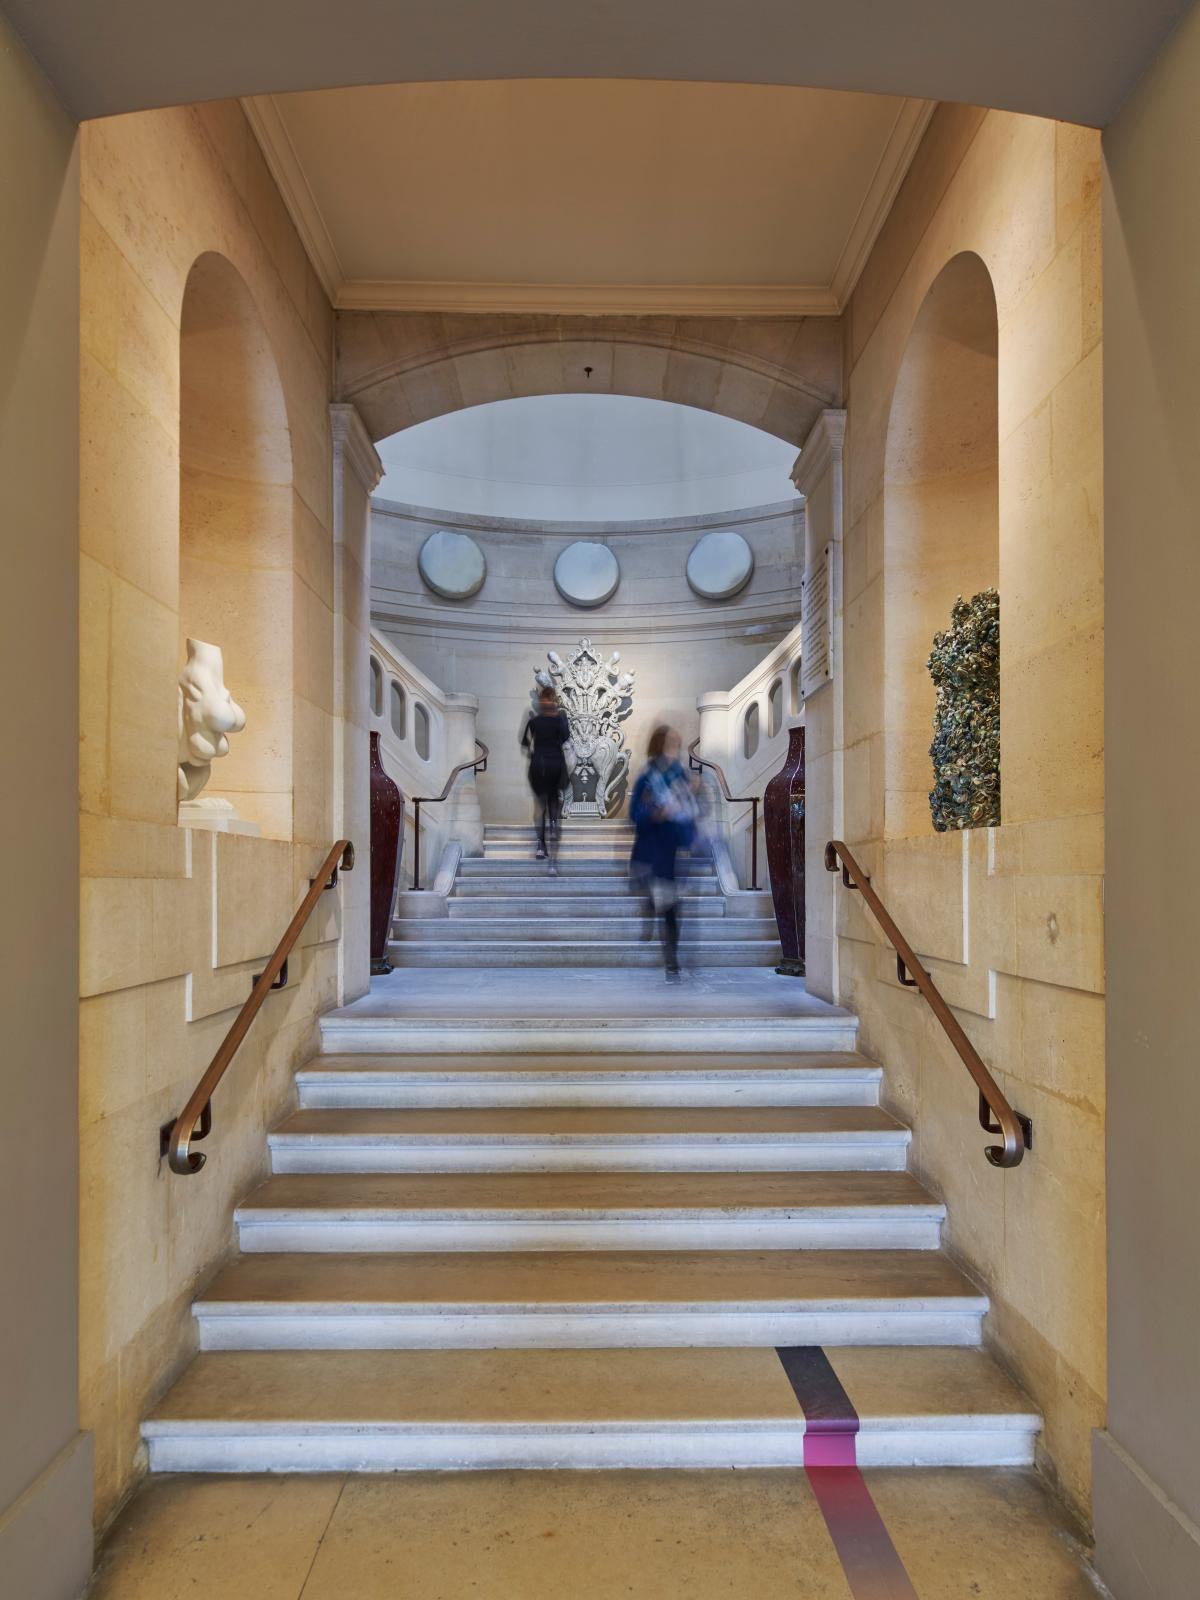 Rooms of the National Ceramic Museum© David Giancatarina / Sèvres - National Manufactory and Museum